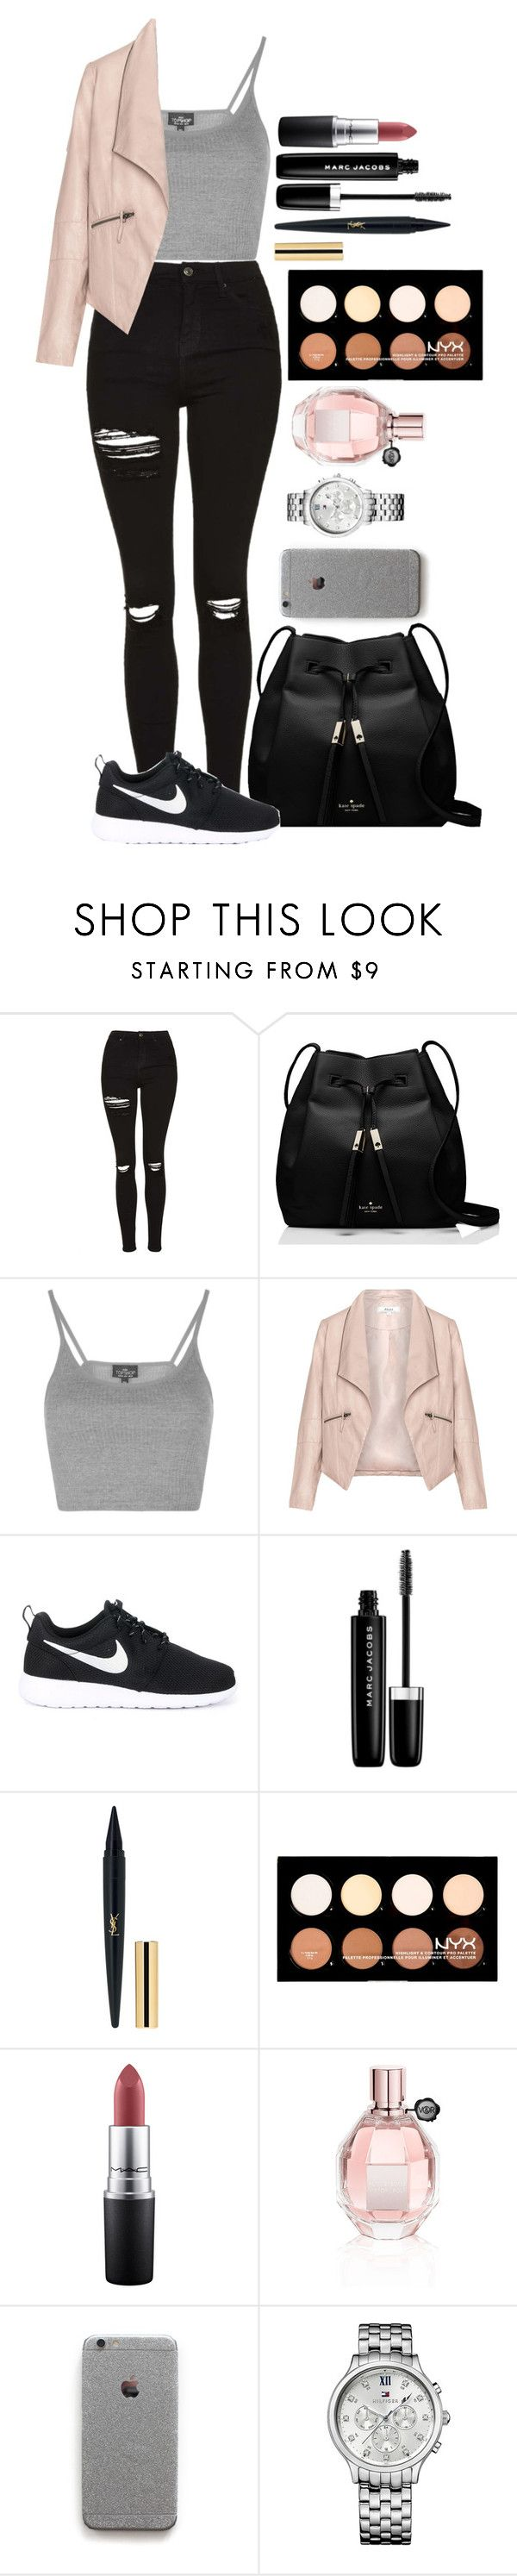 """""""Untitled #1477"""" by fabianarveloc on Polyvore featuring Topshop, Kate Spade, Zizzi, NIKE, Marc Jacobs, NYX, MAC Cosmetics, Viktor & Rolf and Tommy Hilfiger"""